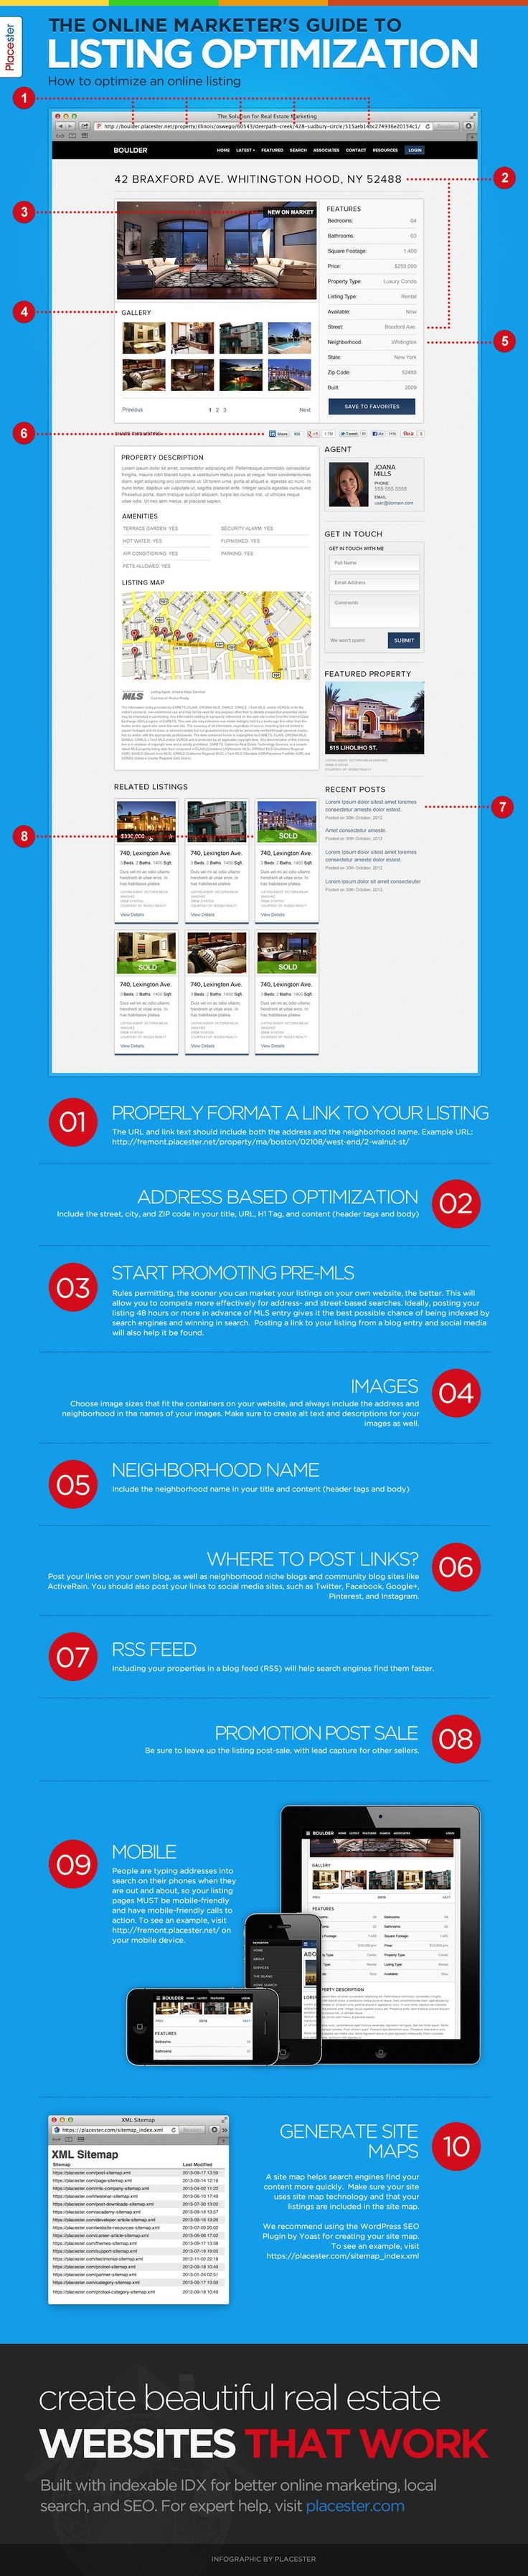 [Infographic] The Online Marketer's Guide to Listing Optimization